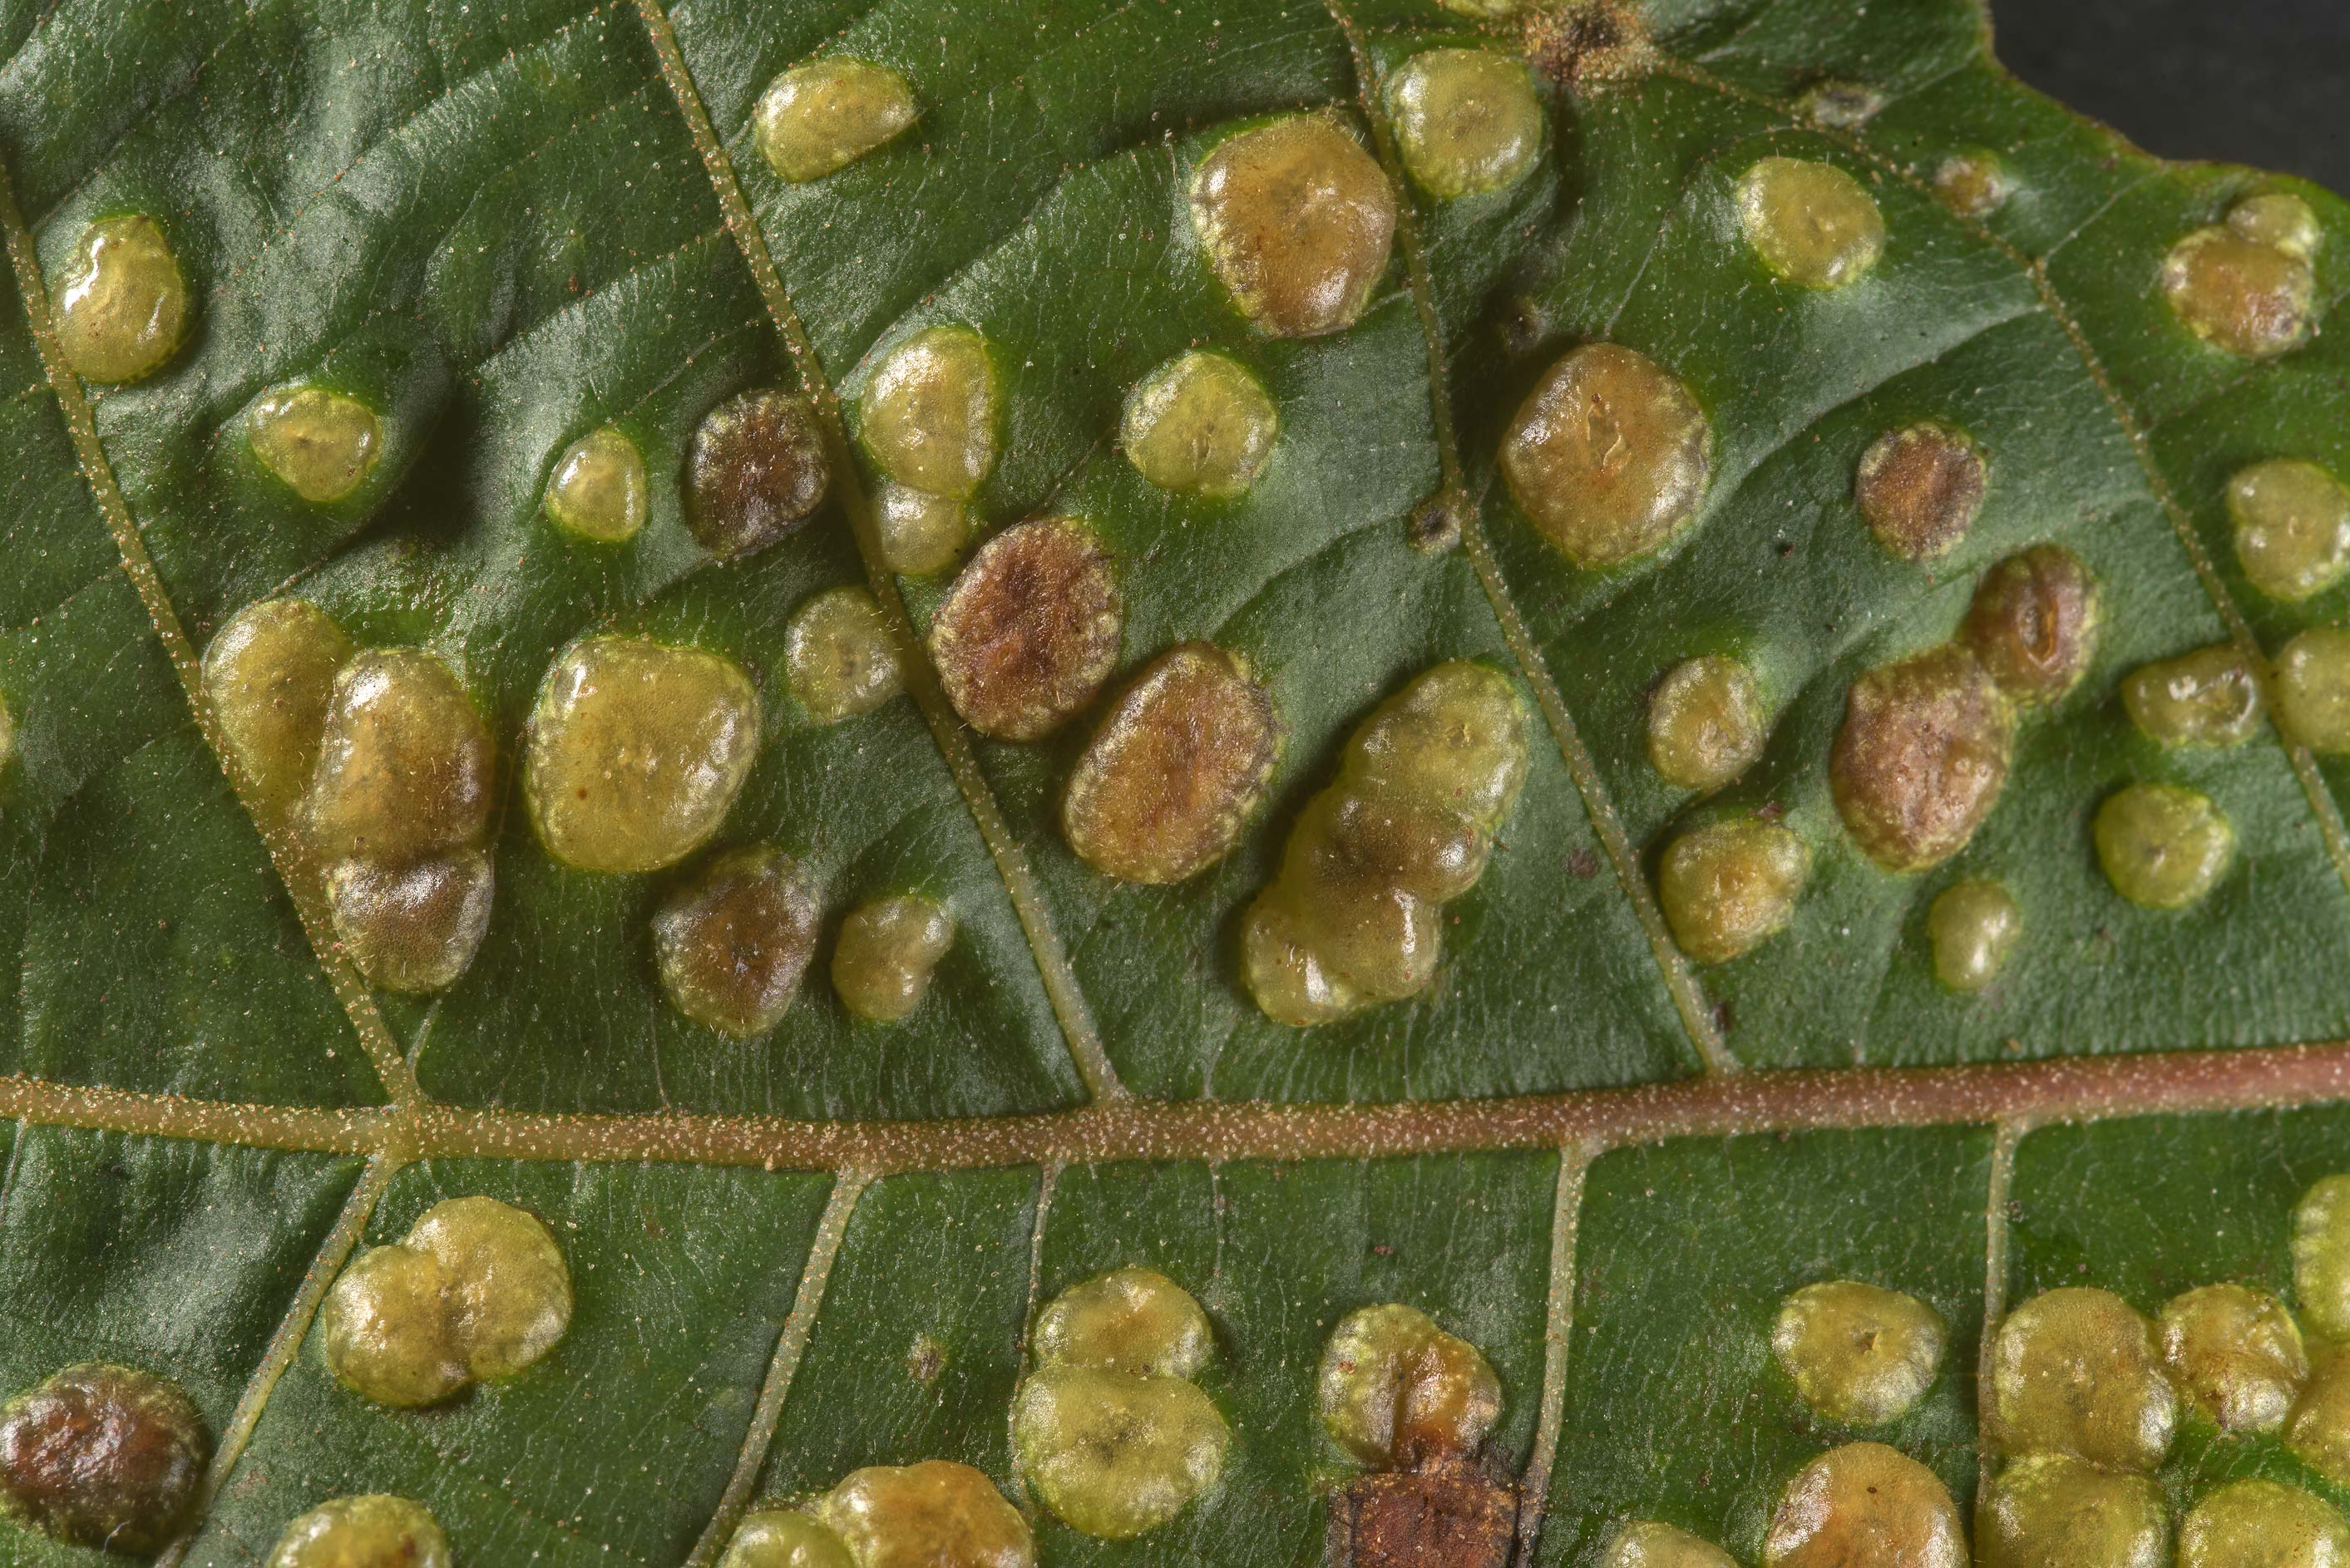 Texture of Phylloxera galls on hickory leaves on...National Forest near Richards. Texas